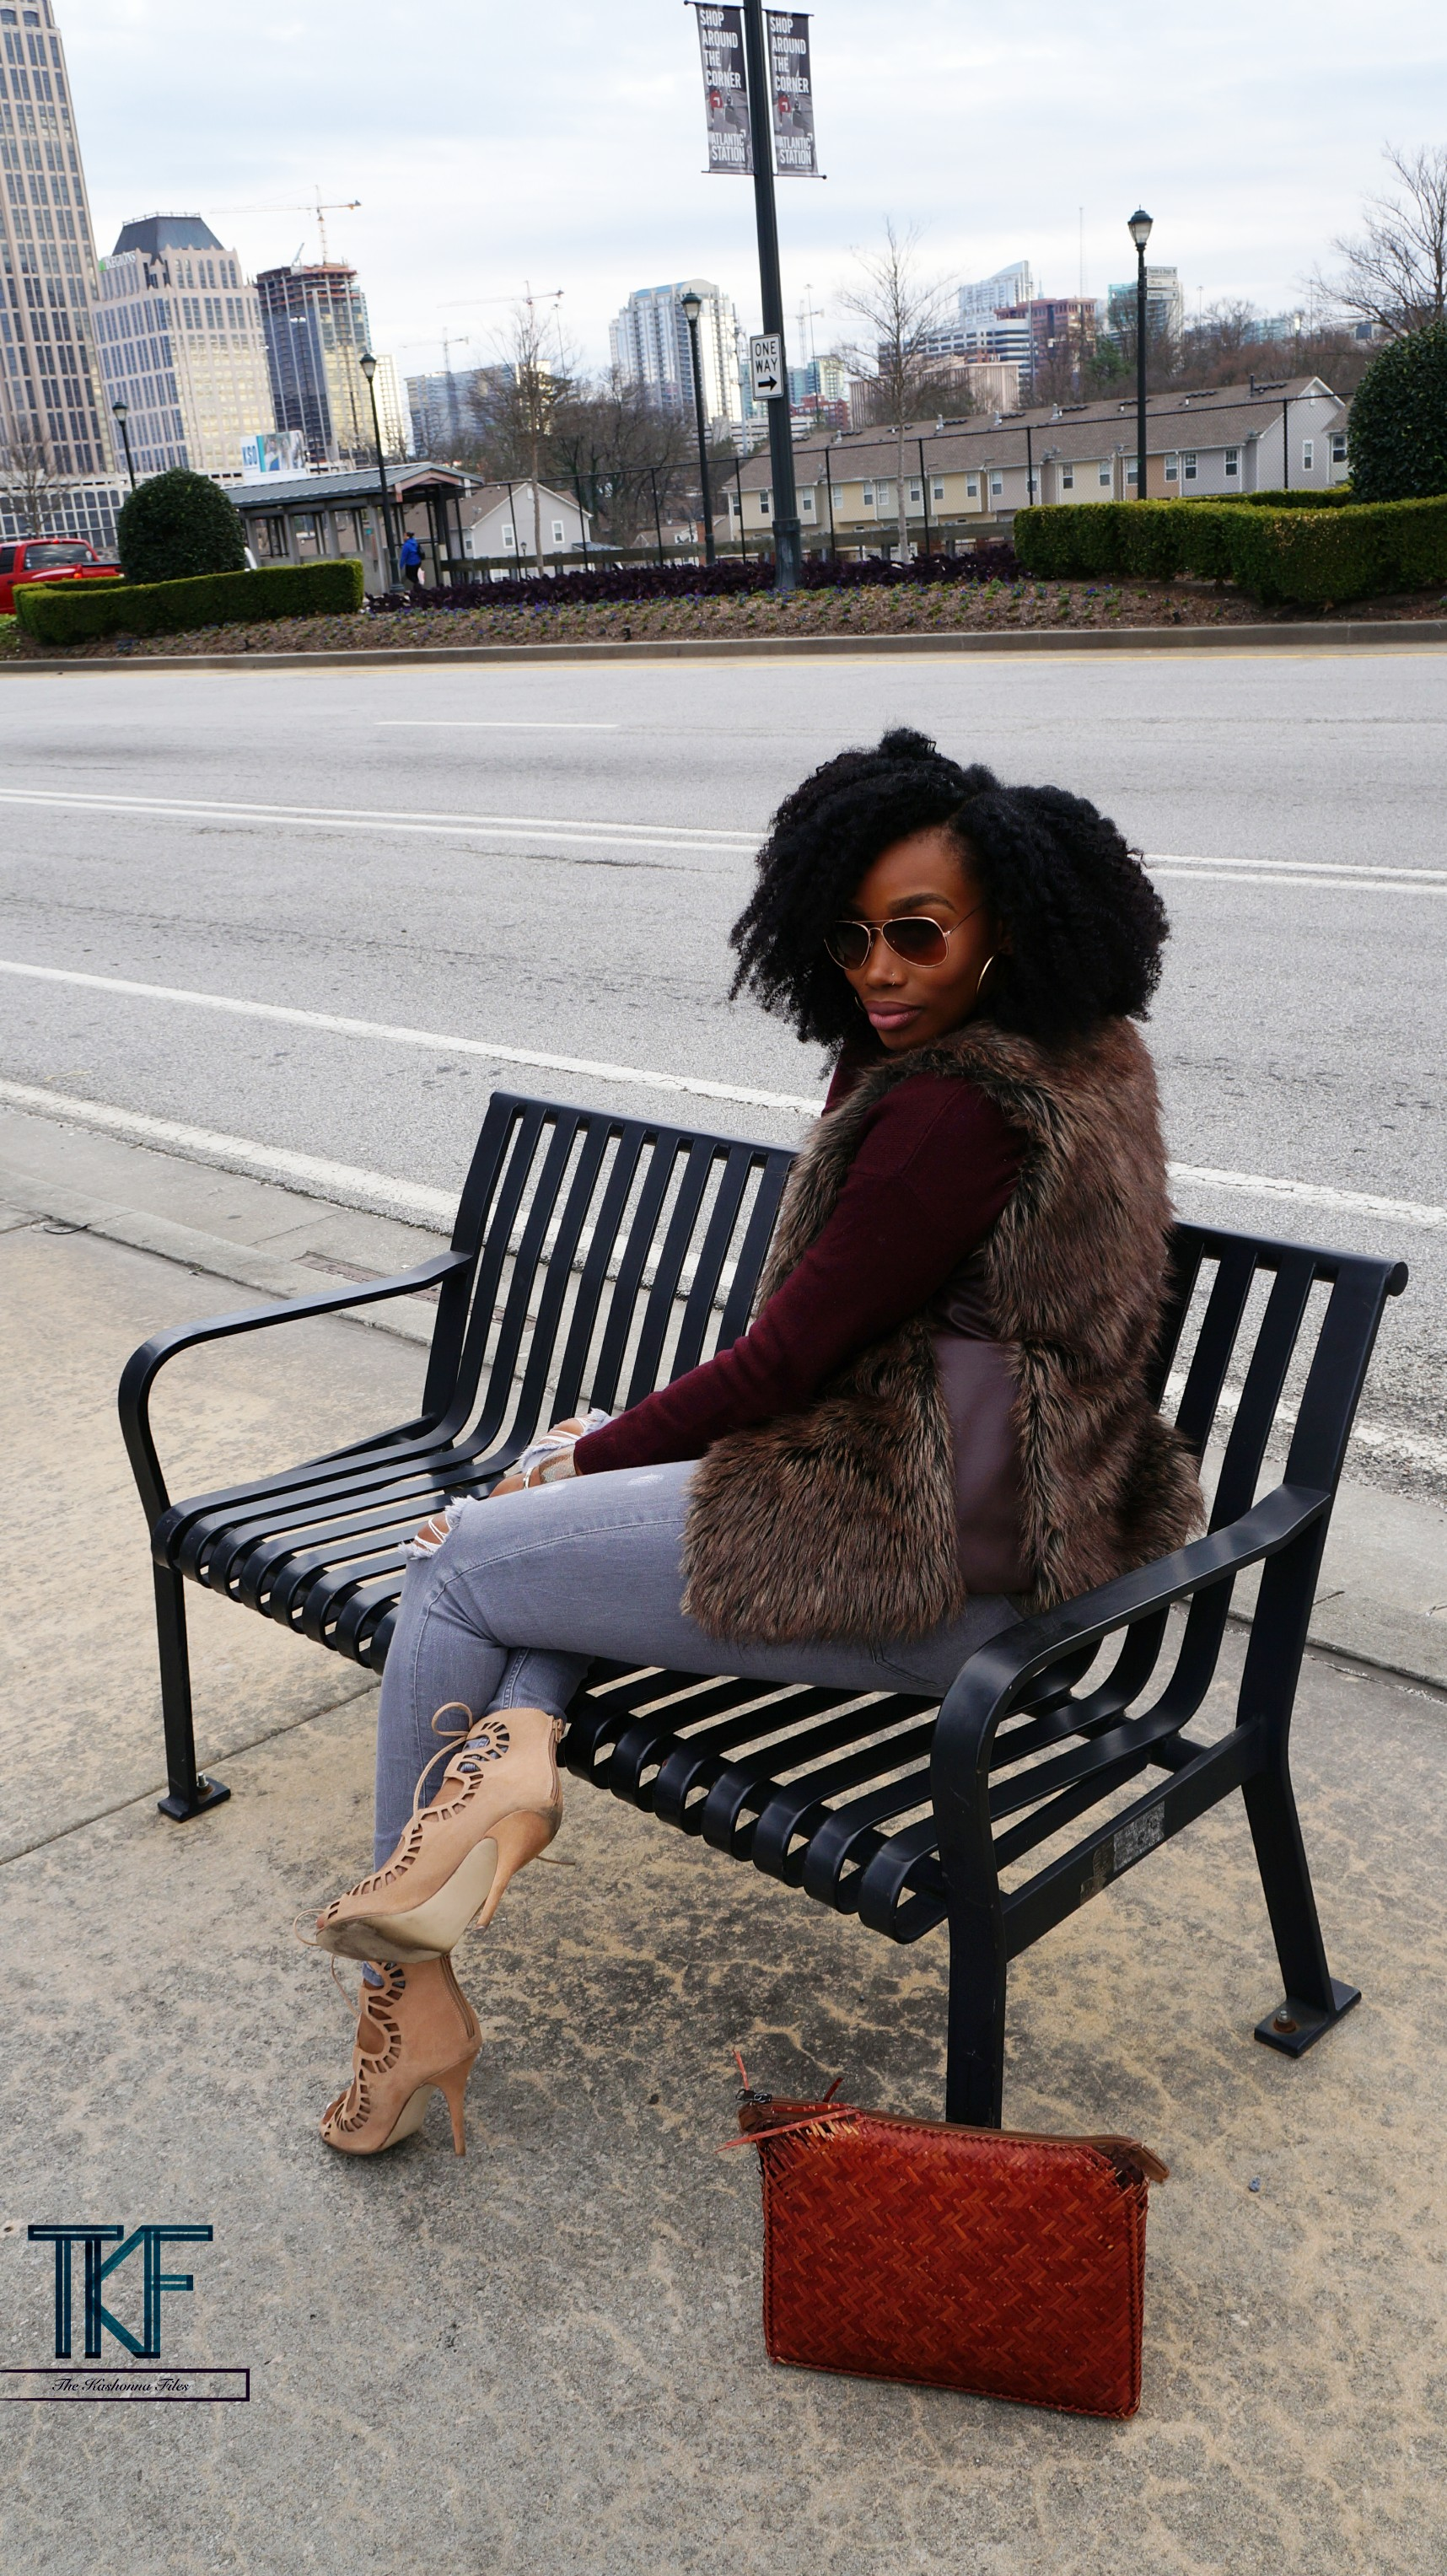 fashionable-girl-sitting-on-a-bench.jpg